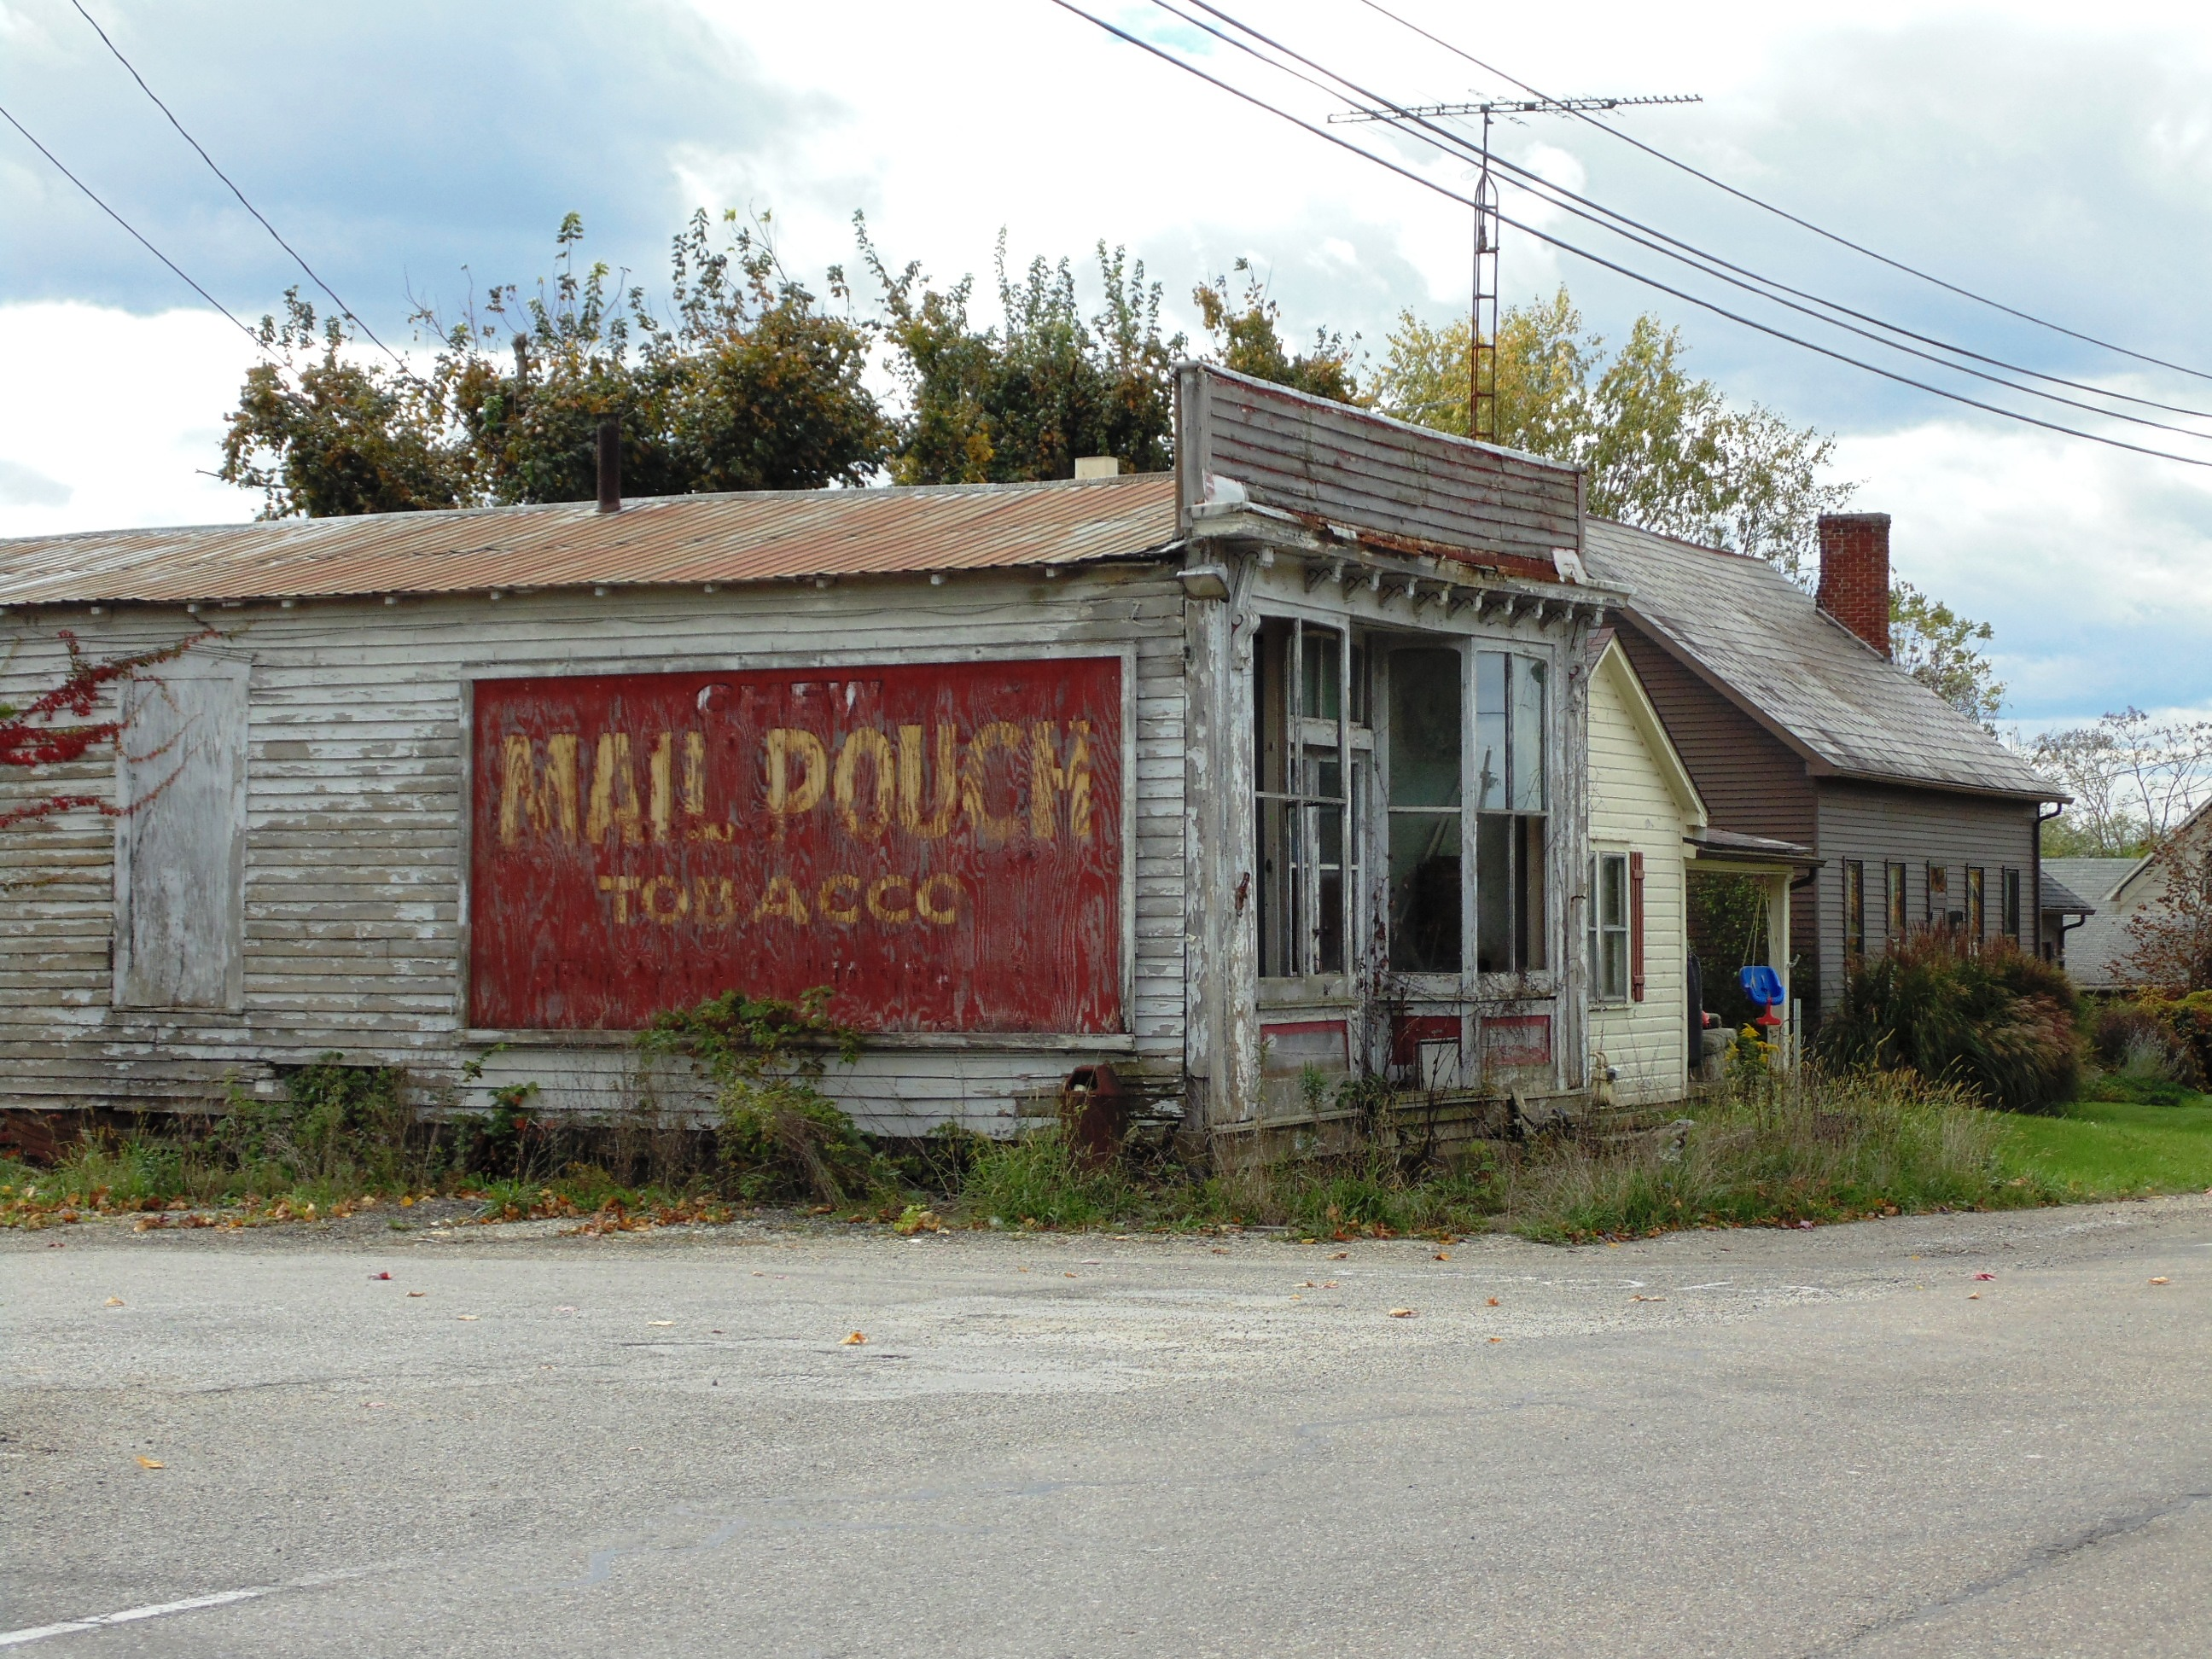 Mail Pouch Tobacco ghost sign on abandoned store - Claysville, Ohio U.S.A. - October 16, 2014